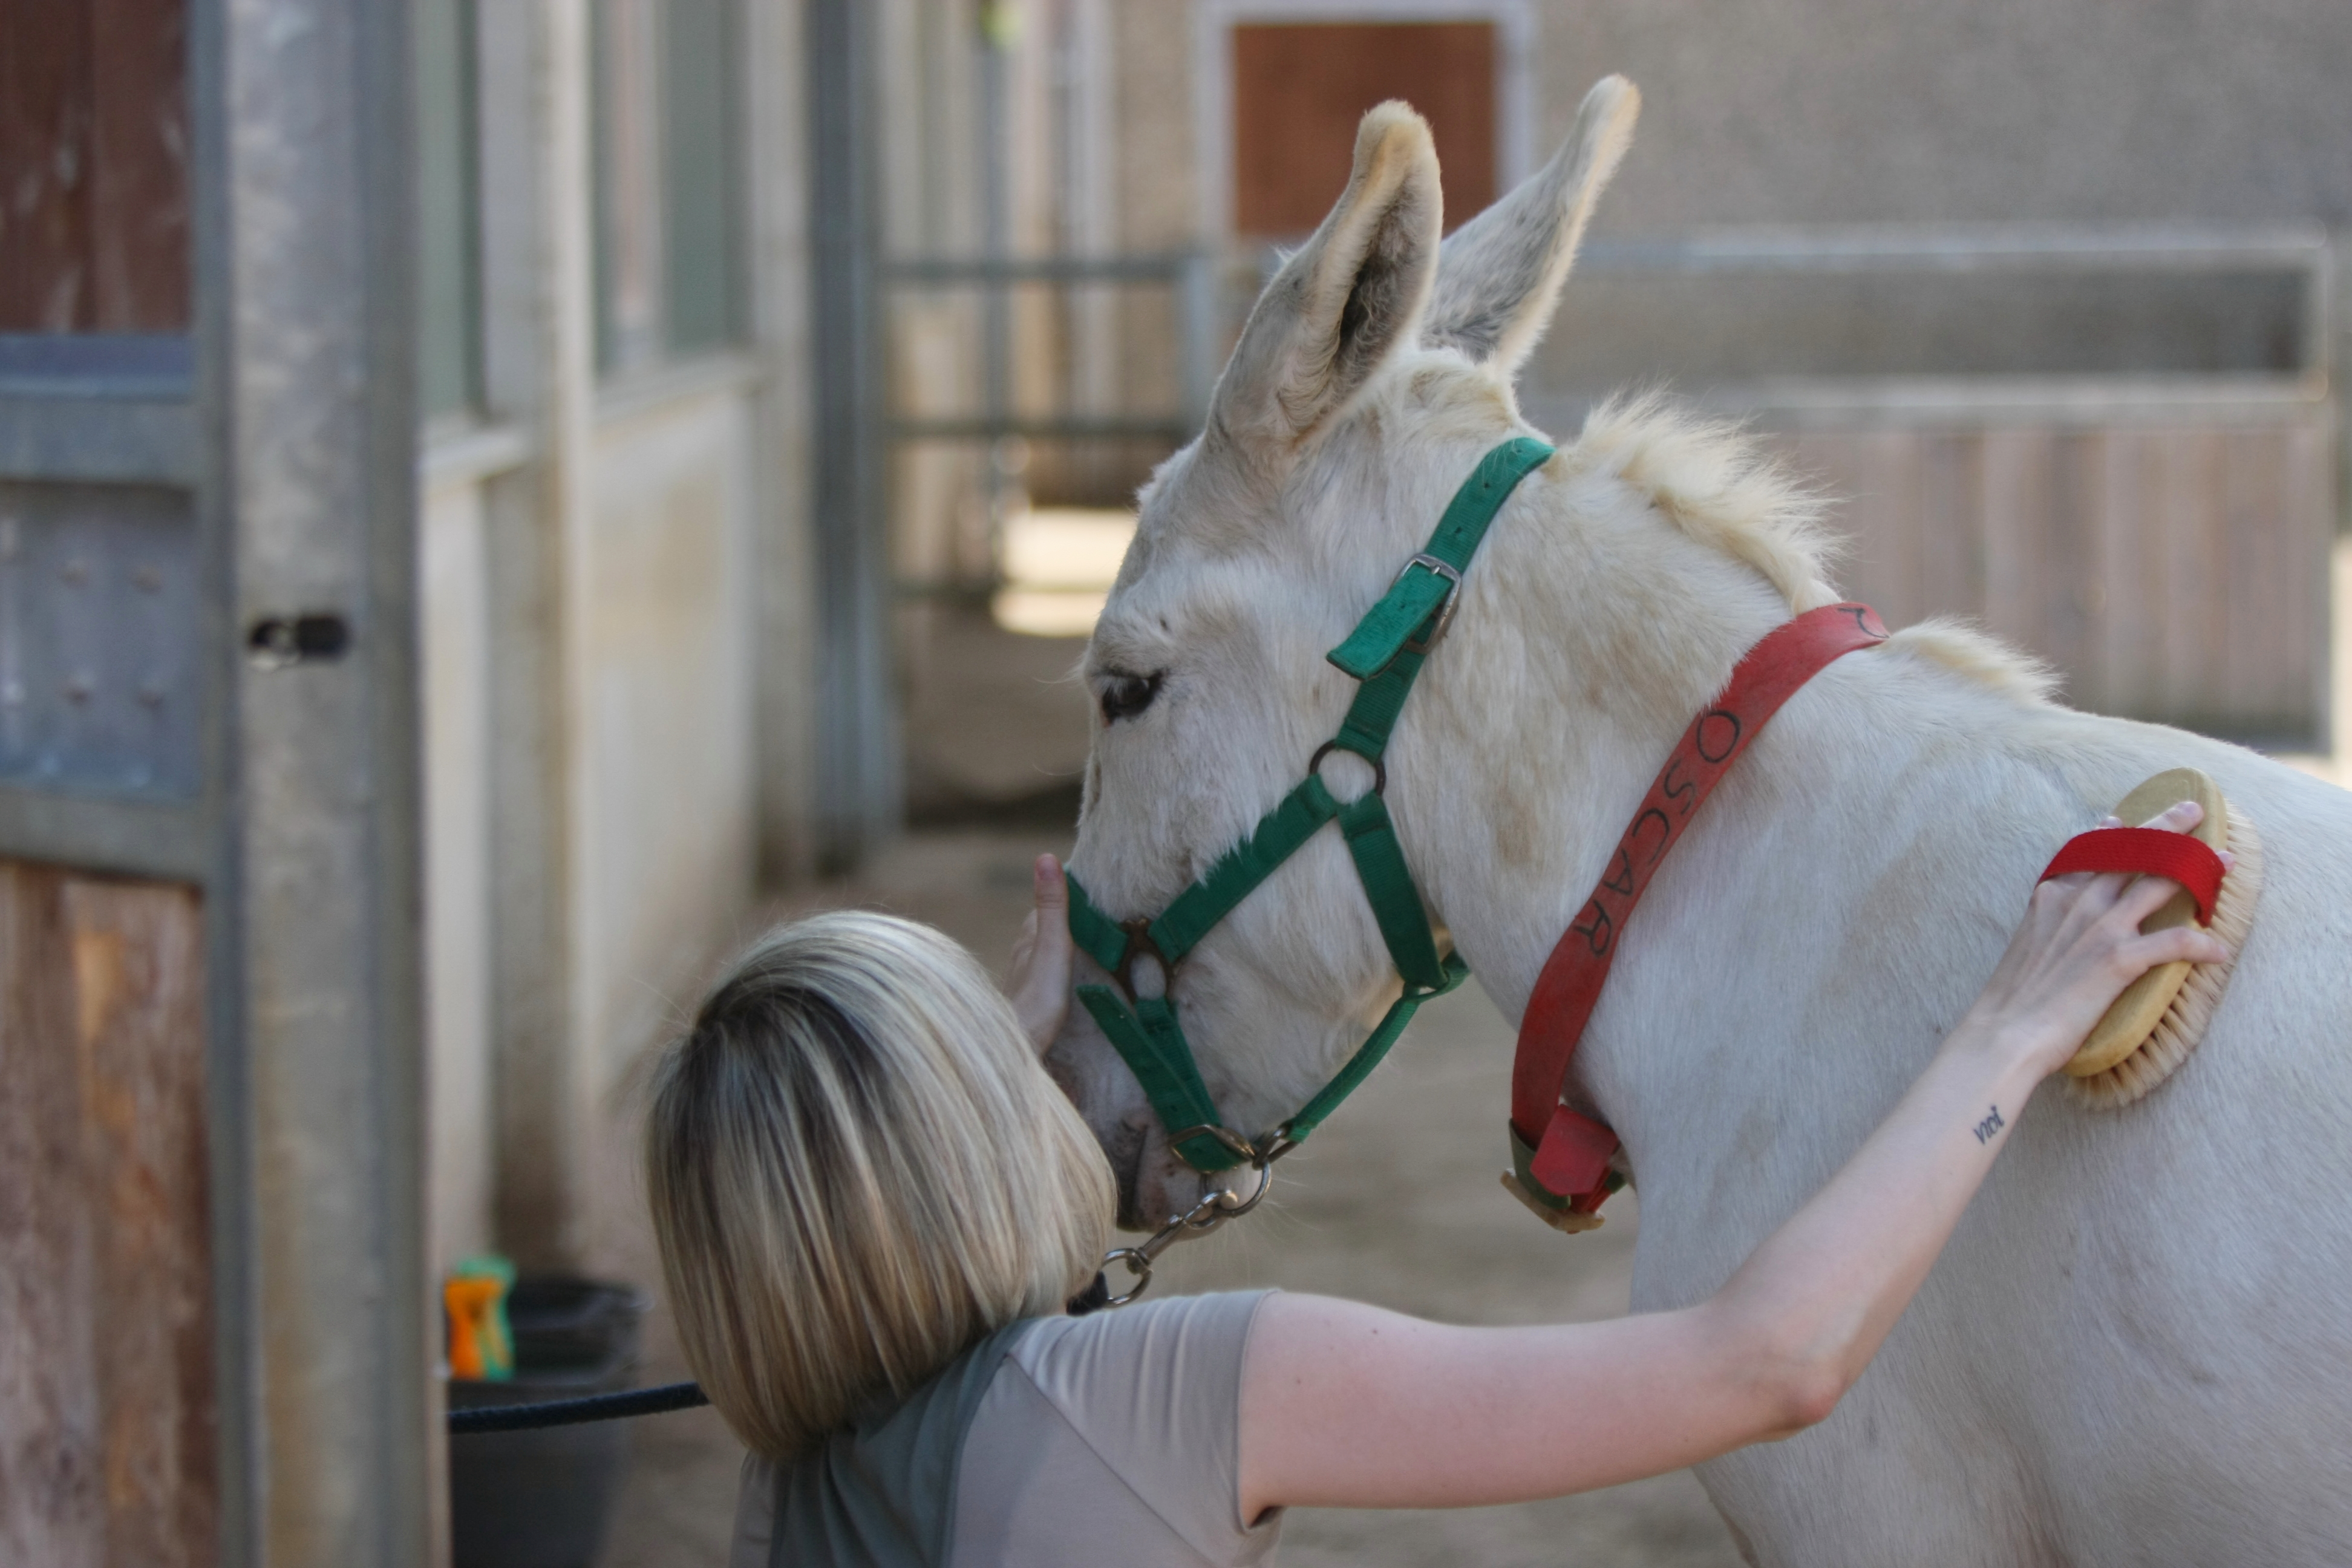 During Grooming Day visitors can learn how to brush donkeys supervised by our staff